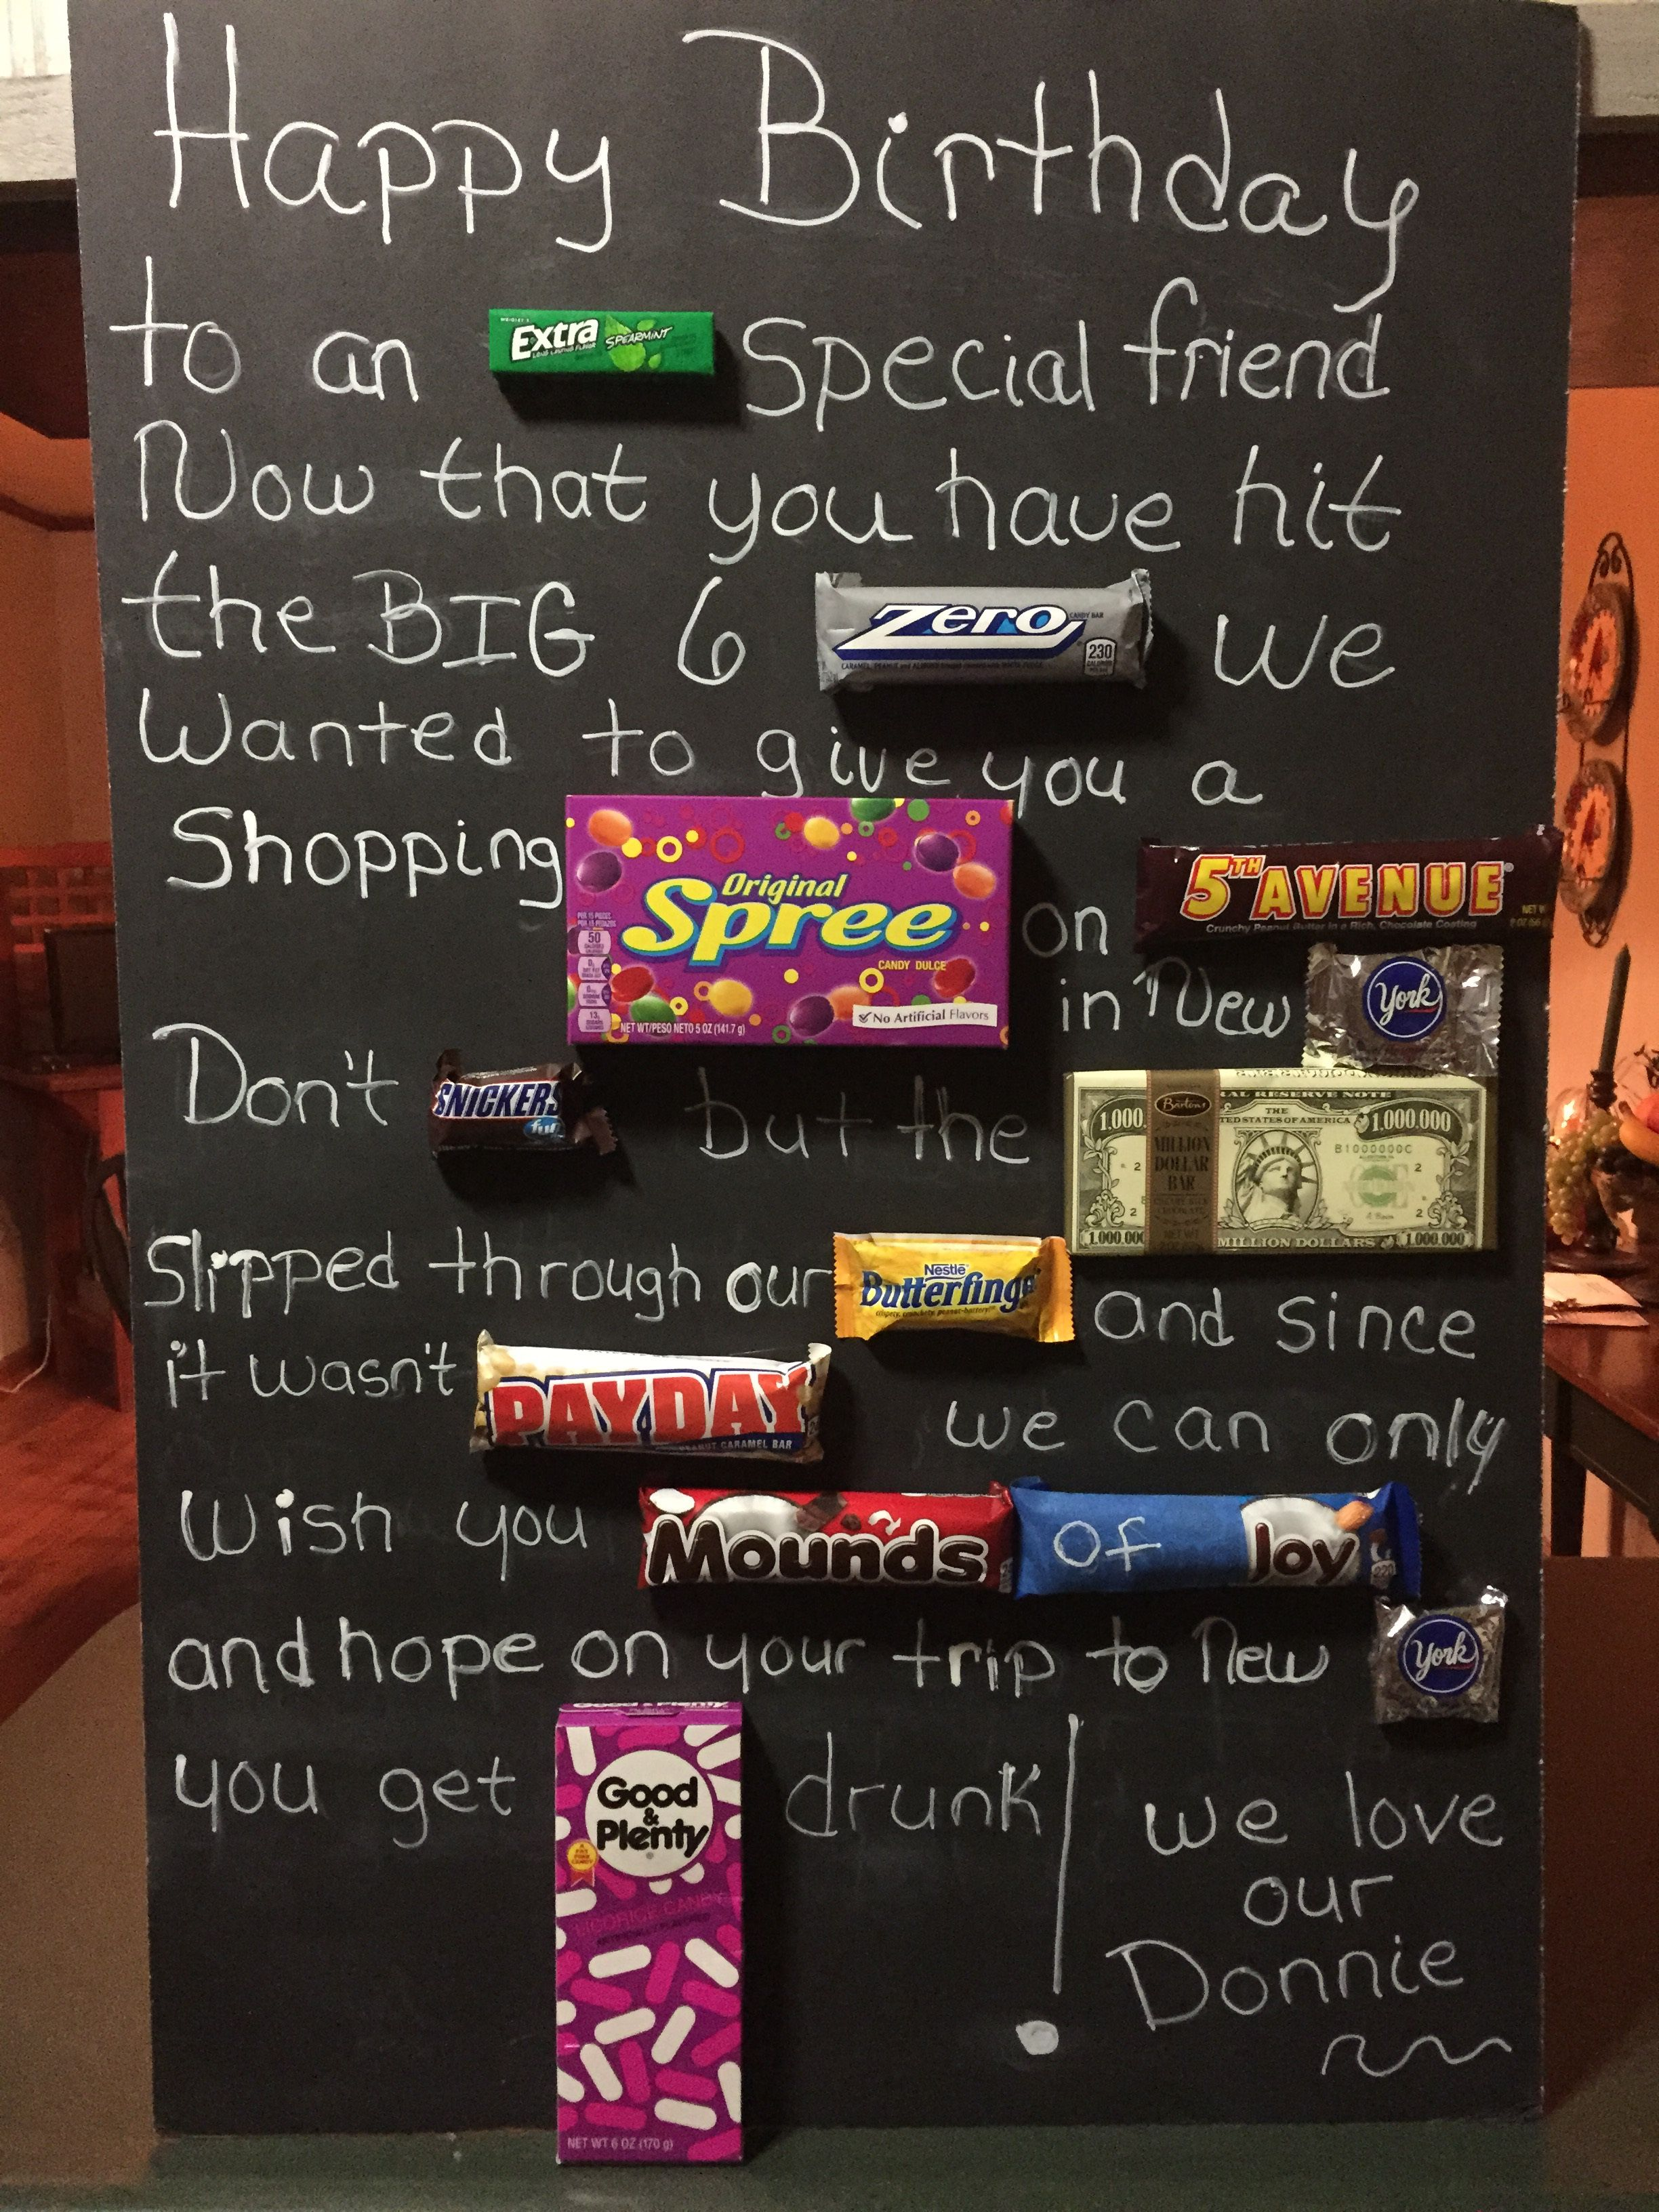 poster board ideas for birthday ; picture-poster-board-for-birthday-old-age-over-the-hill-60th-birthday-candy-card-poster-use-black